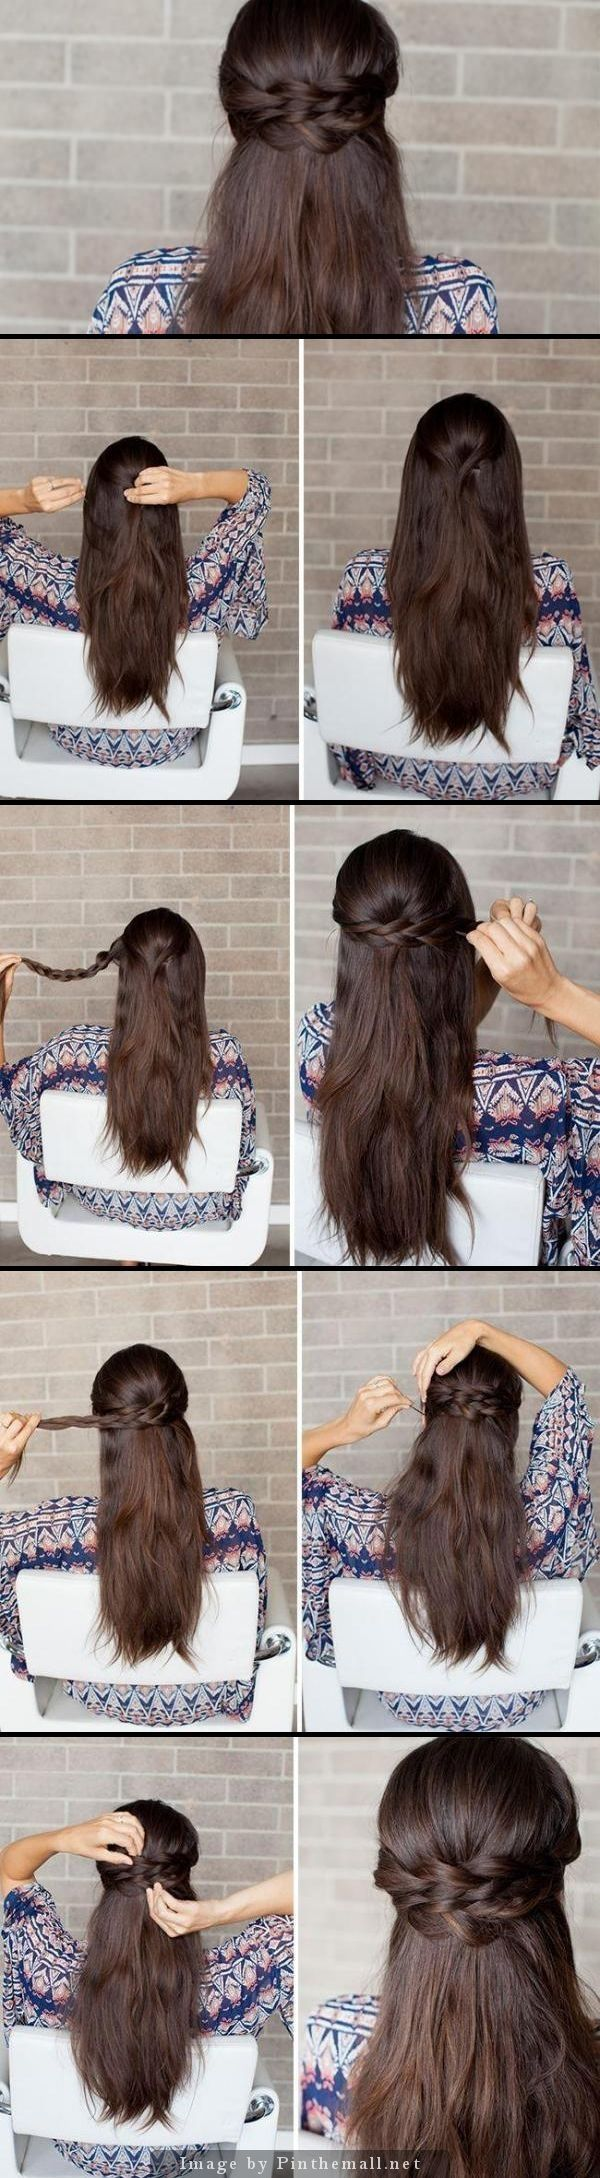 15 Beautiful Half Up Half Down Wedding Hairstyles